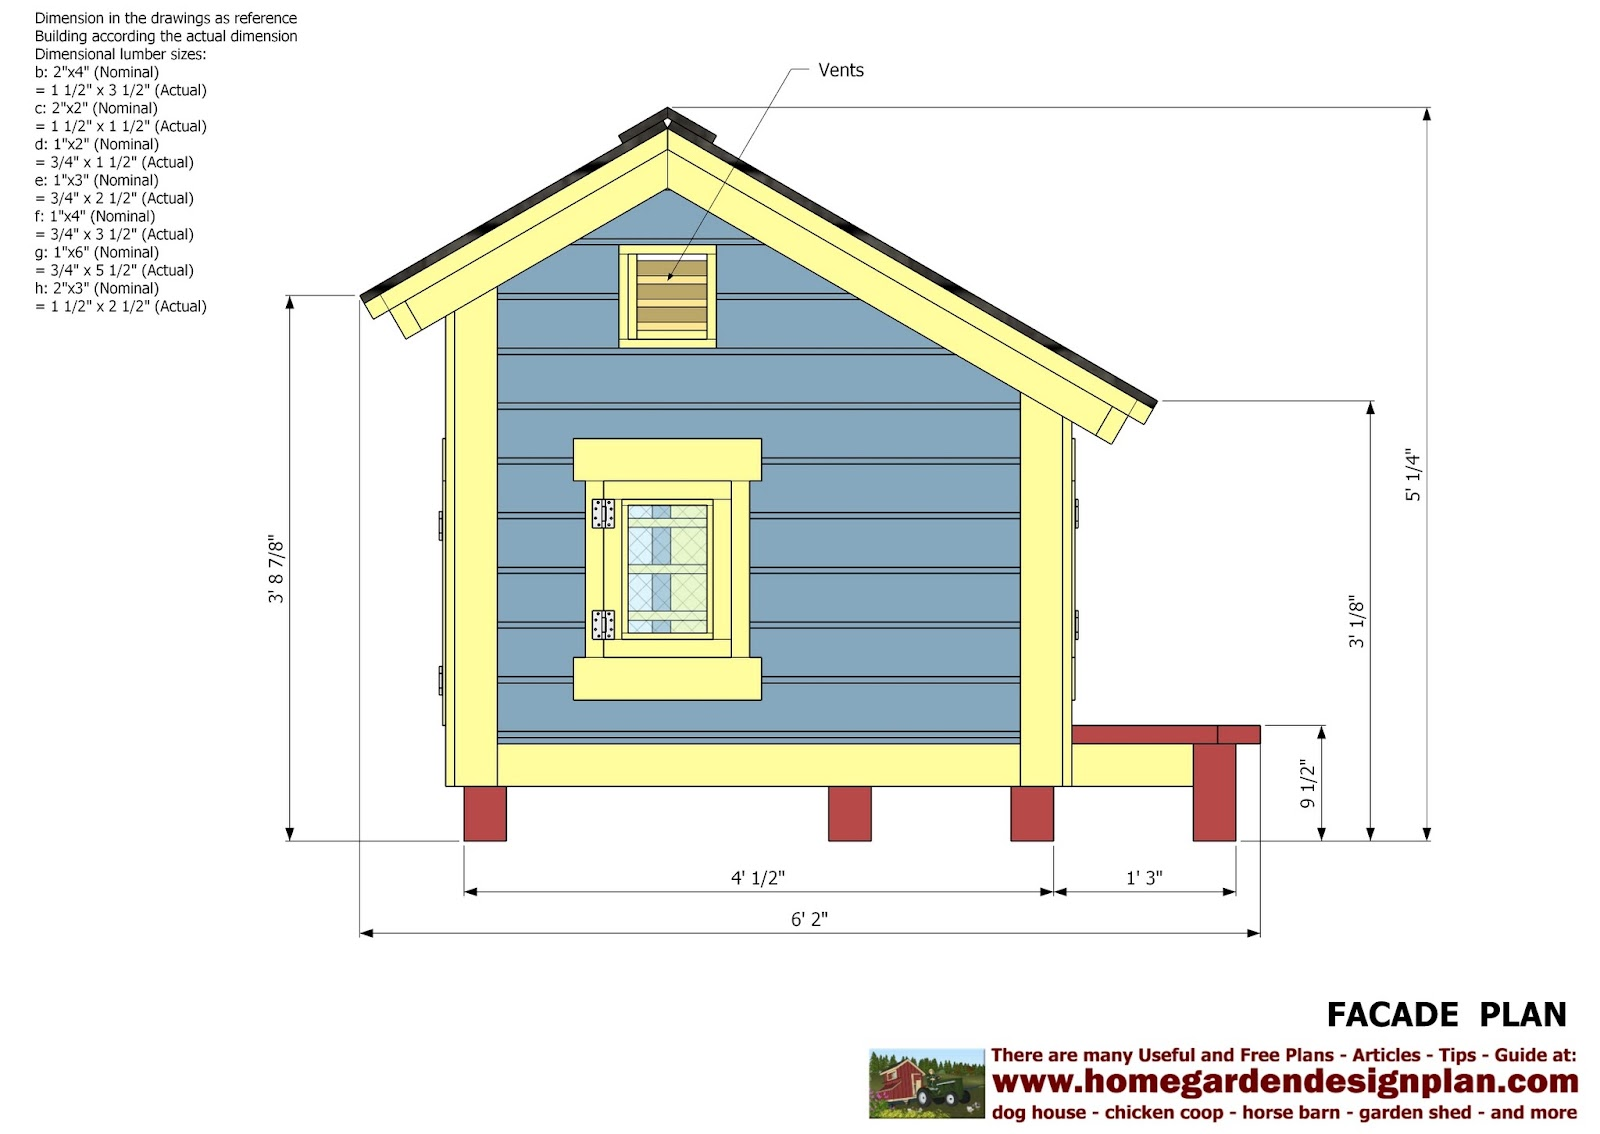 Insulated dog house plans for large dogs free - photo#19